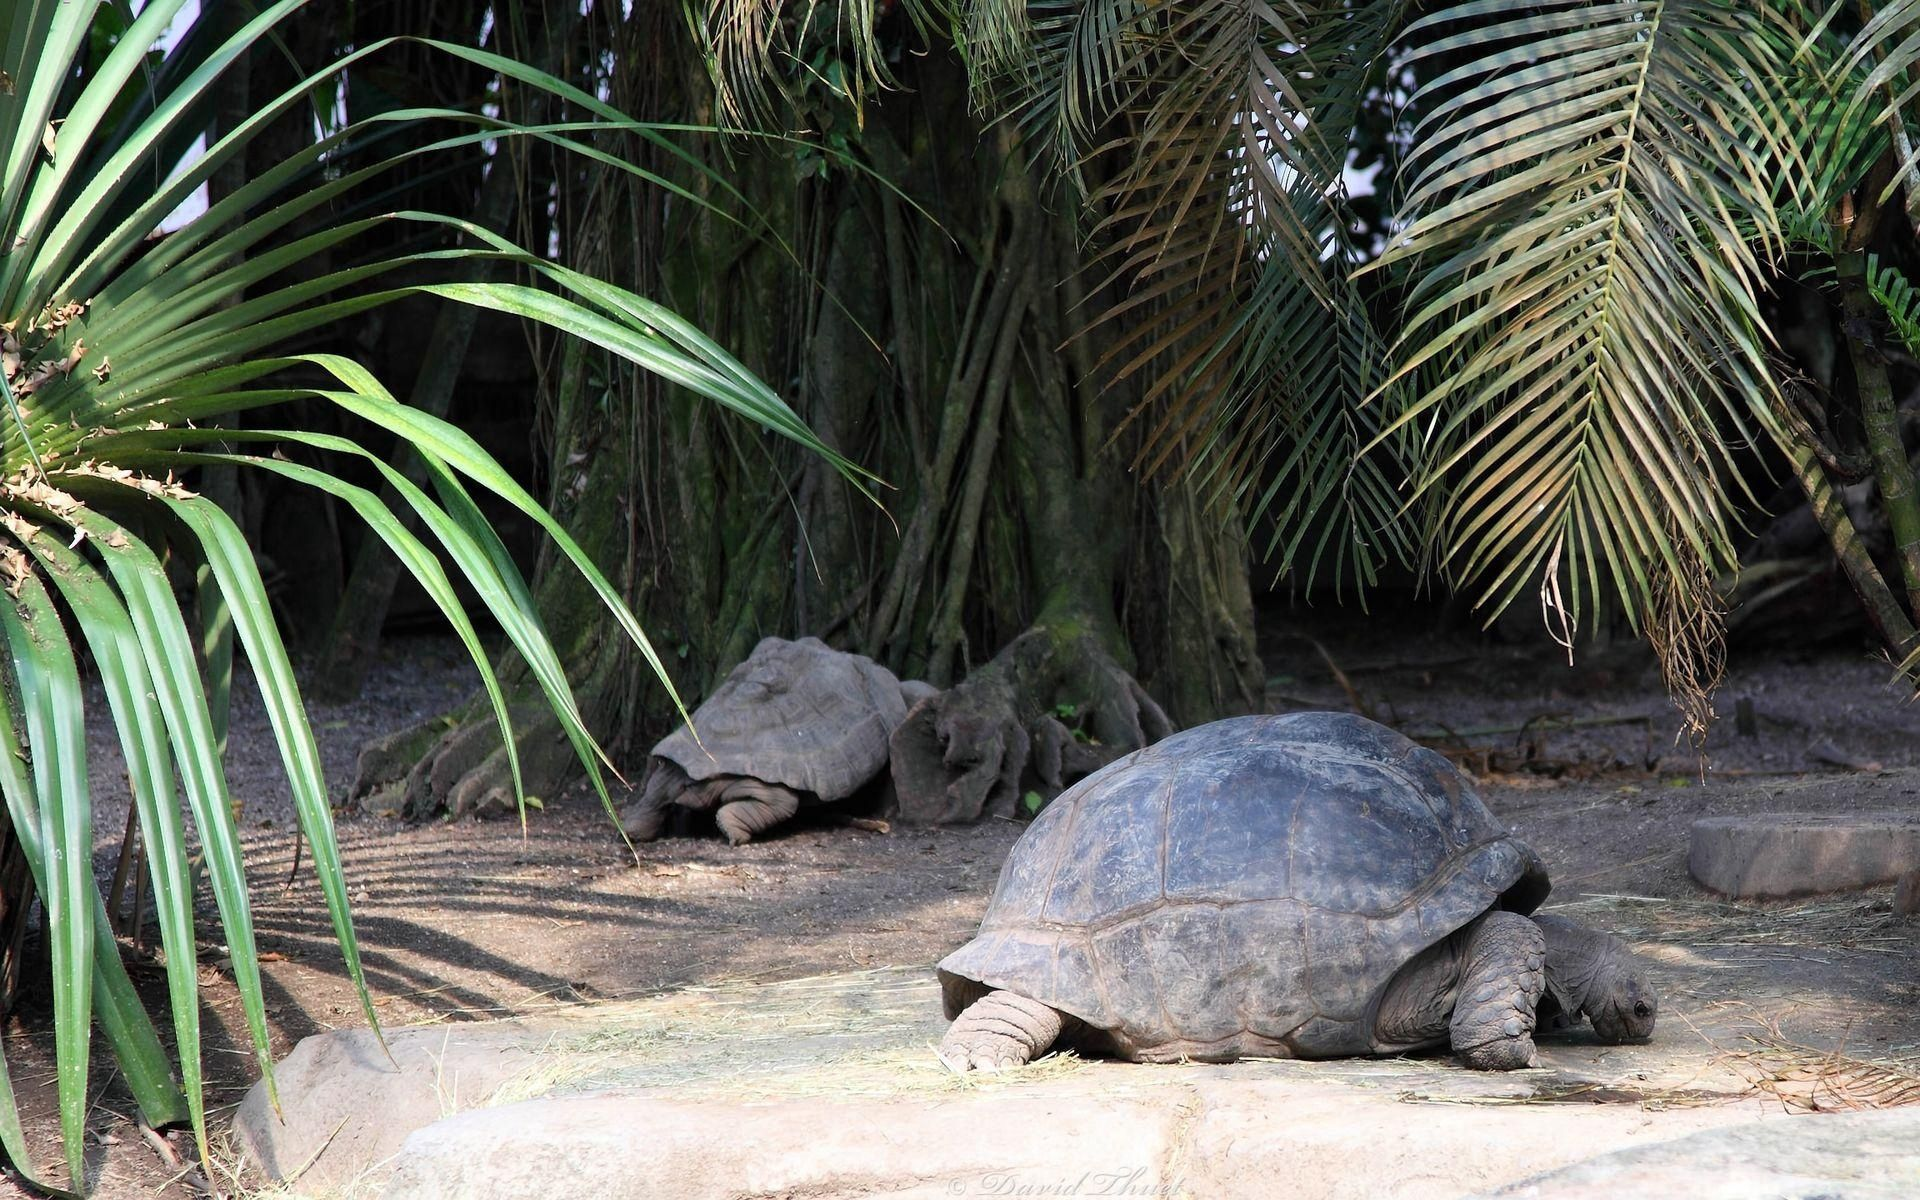 112578 download wallpaper Animals, Turtles, Grass, Wood, To Lie Down, Lie, Tree, Carapace, Shell screensavers and pictures for free